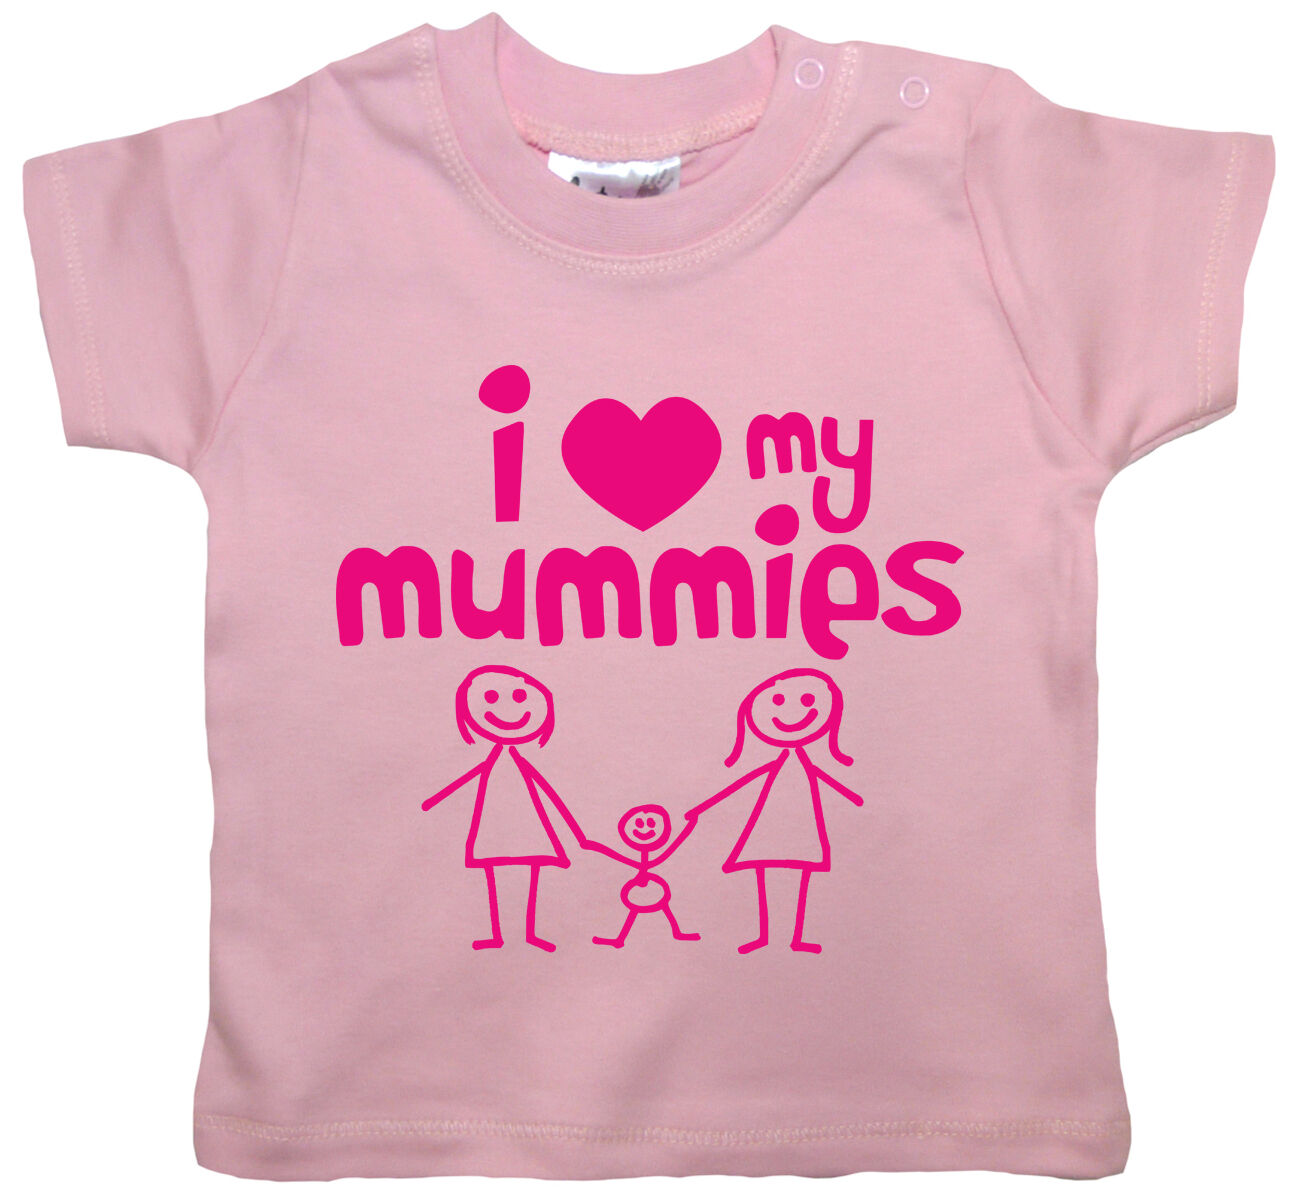 "LGBT Baby T-Shirt /""I Love my Mummies This Much/"" Gay Lesbian Pride"